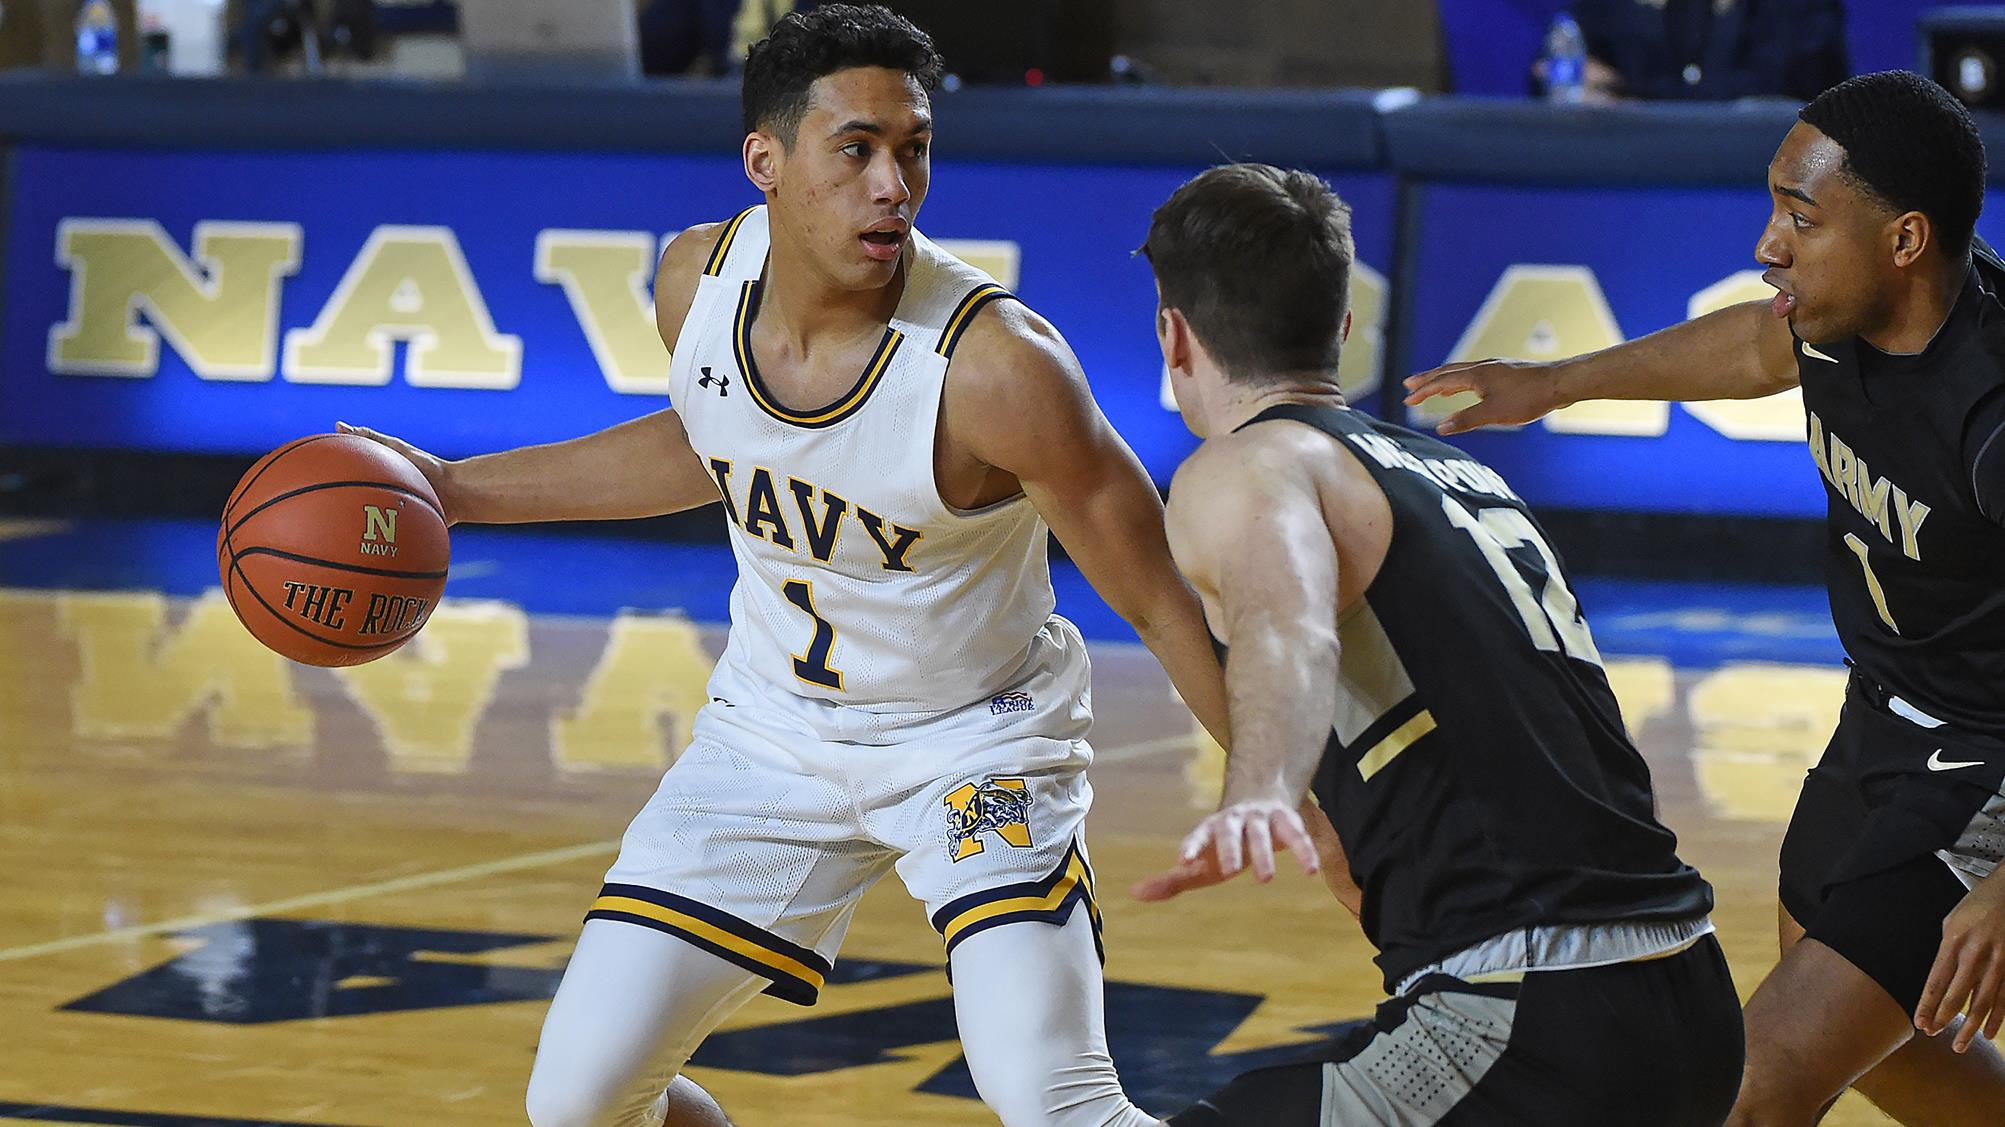 Naval Academy Athletics on Pause for a Minimum of 10 Days Except Men's  Basketball - Naval Academy Athletics